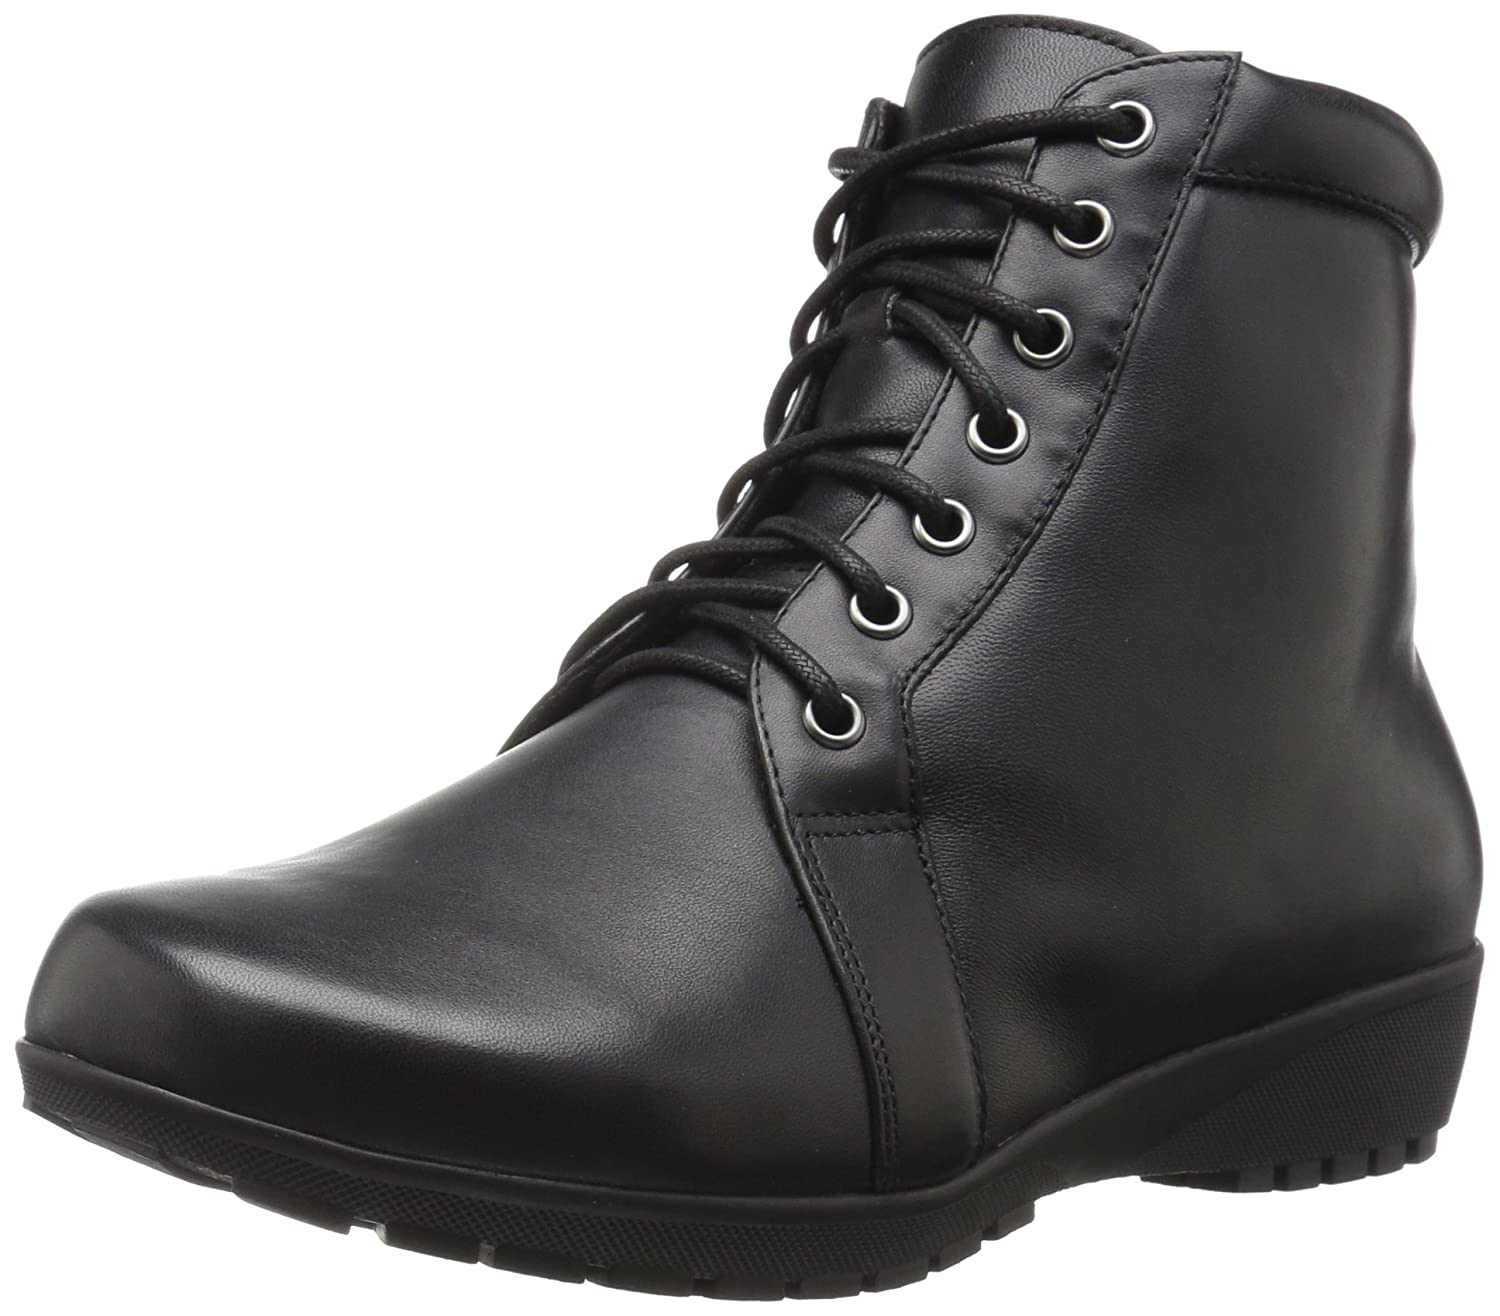 Walking Cradles Women's Ziggy Ankle Boot B01MZDL8Q5 9 B(M) US|Black Nappa Leather